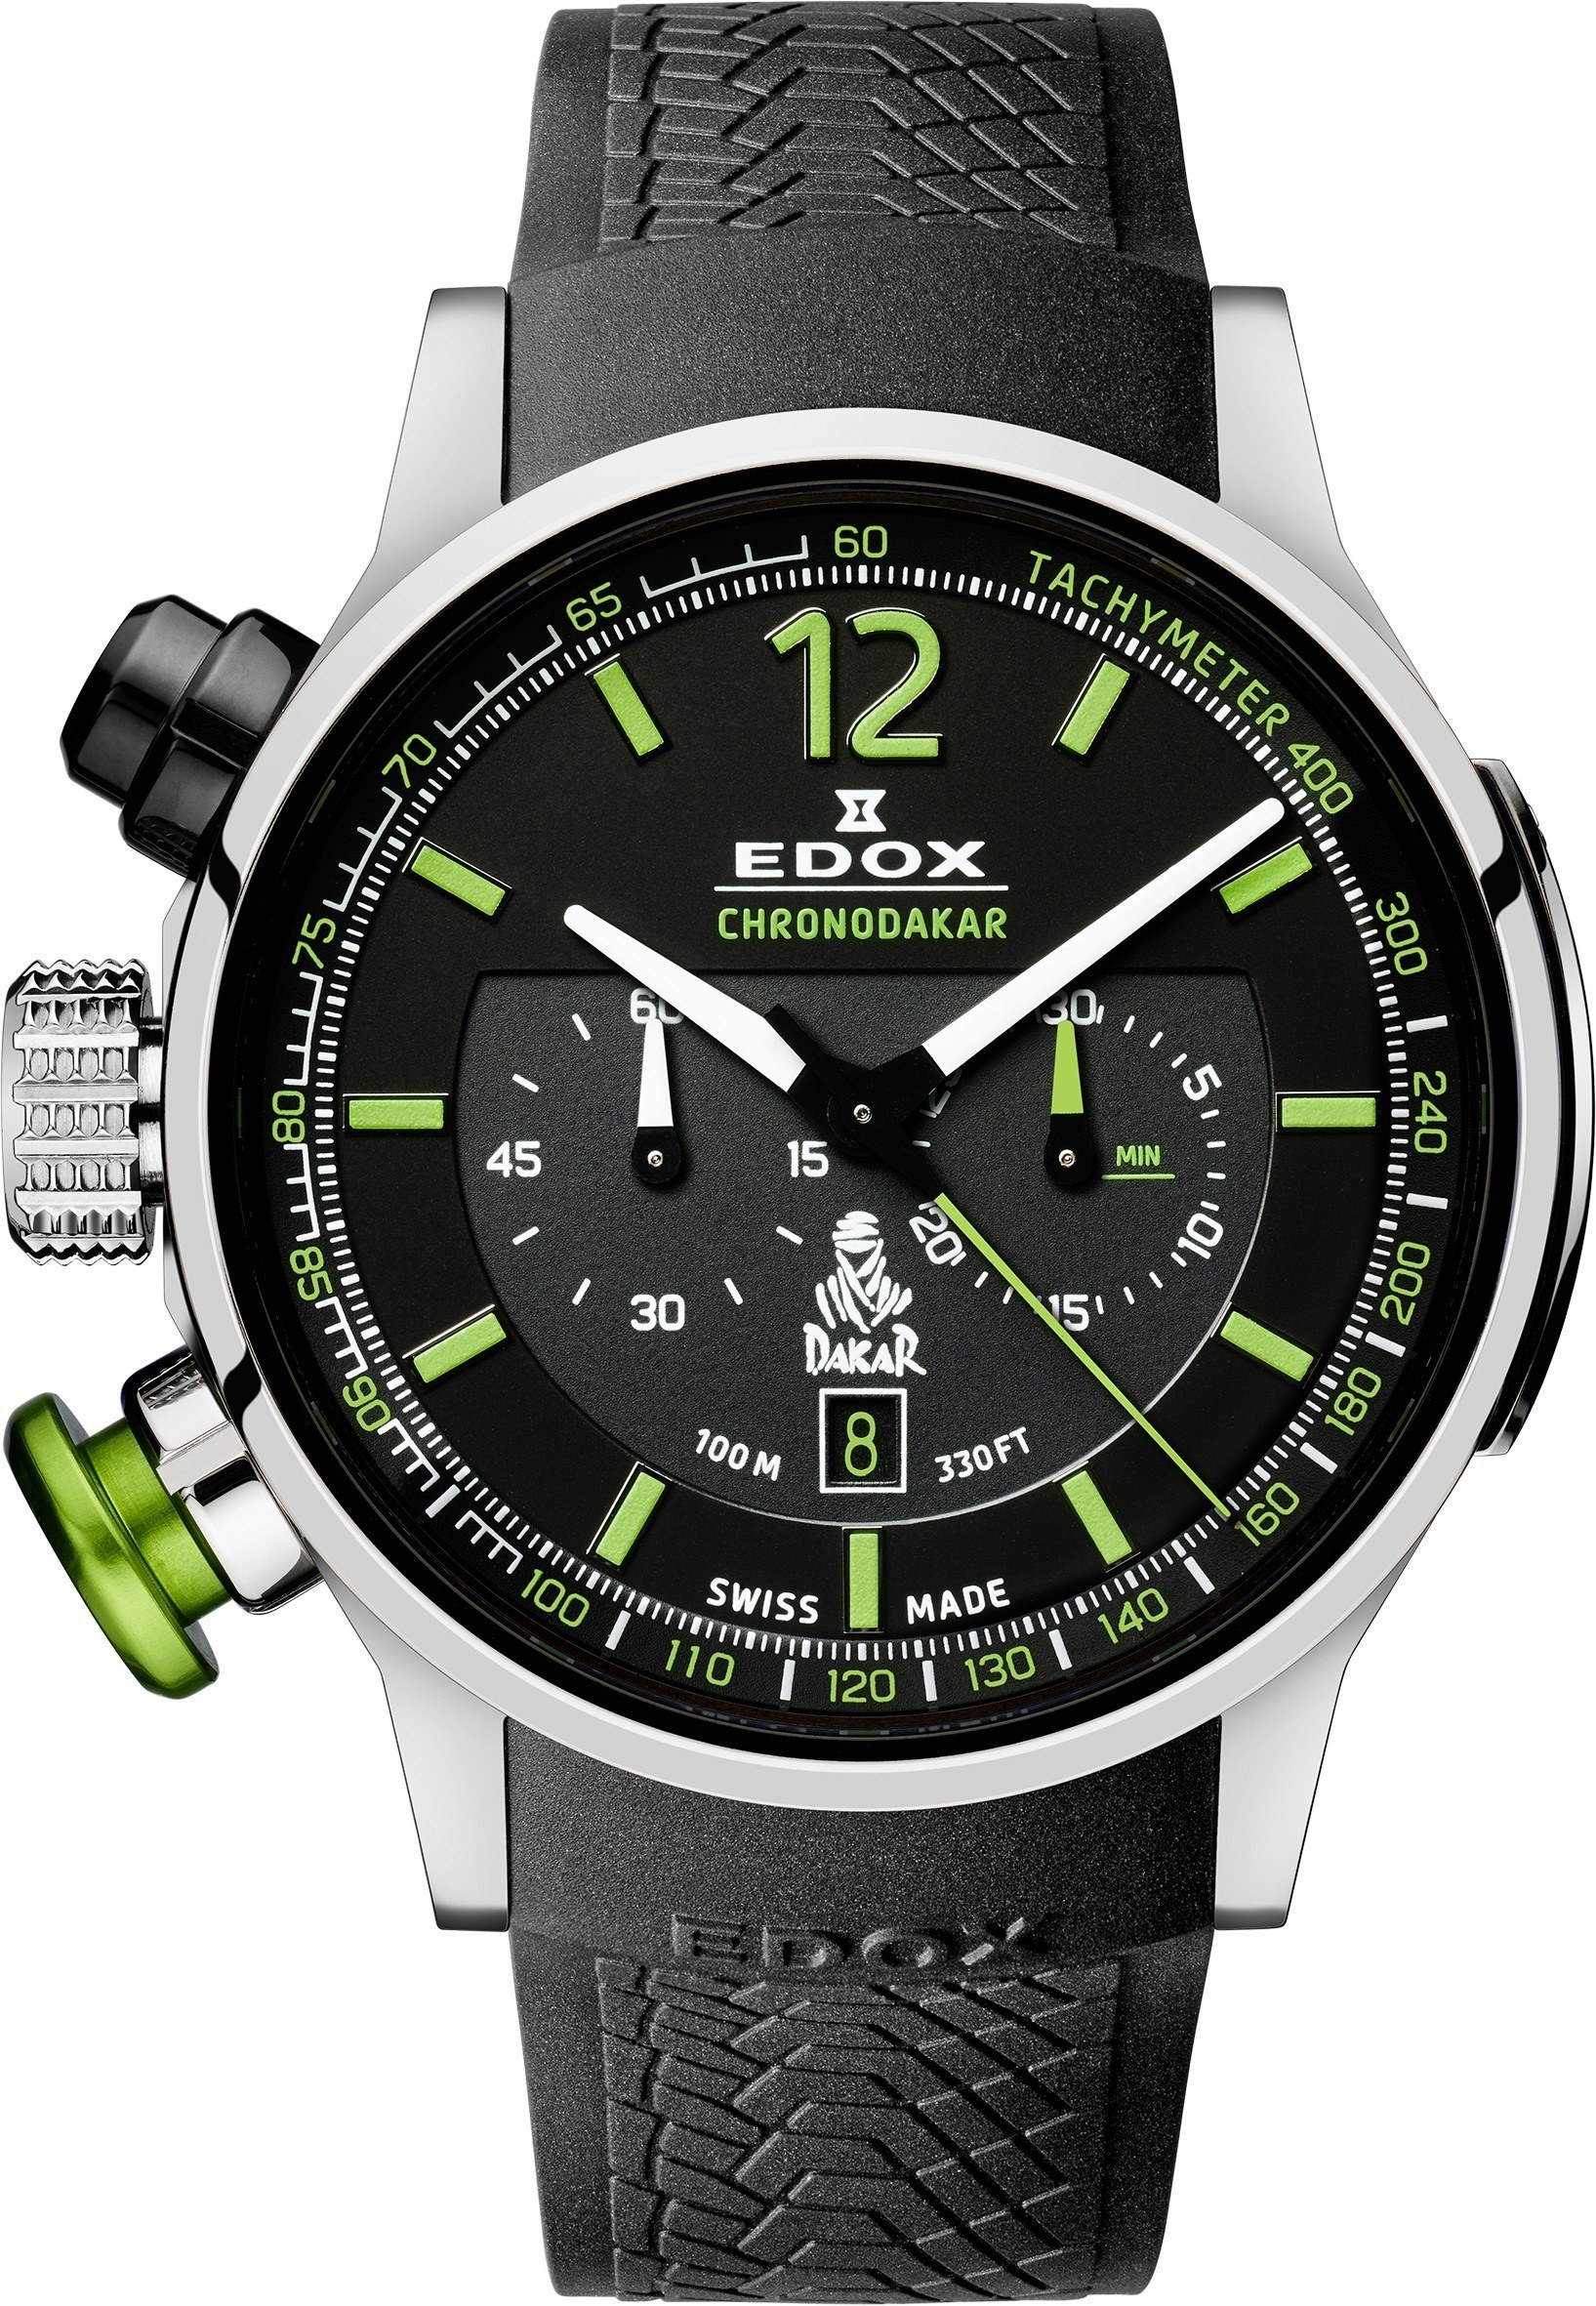 ChronoRally ChronoDakar III Limited Edition by Edox